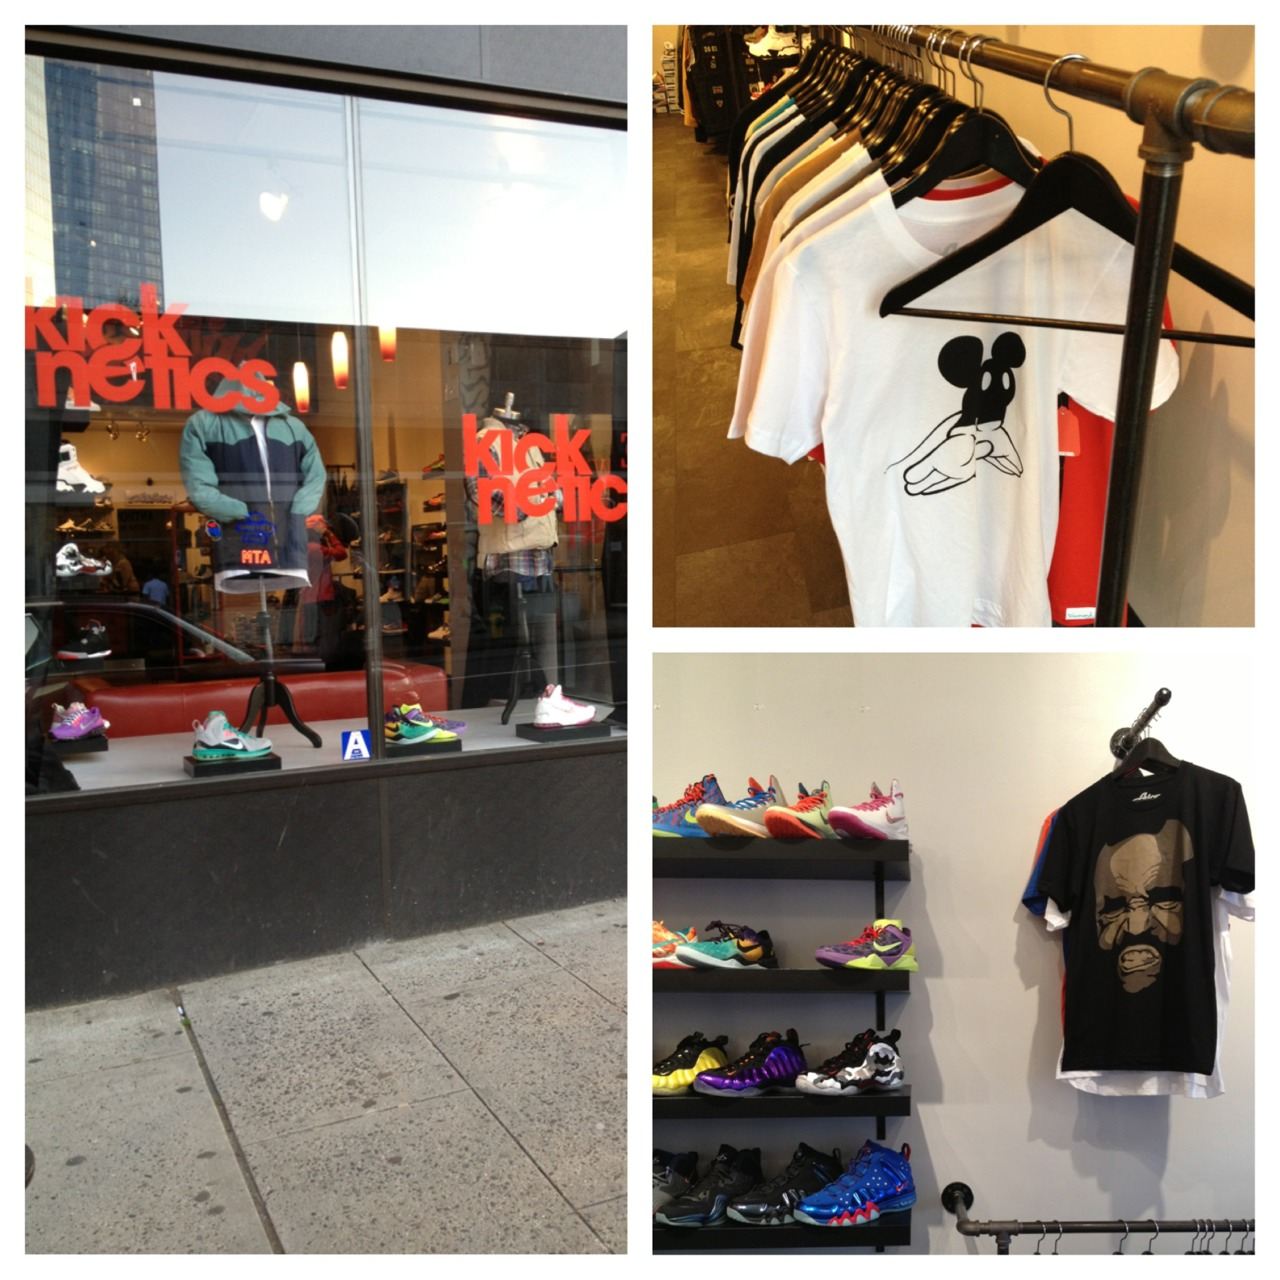 Go ahead and check out the Kicknetics Boutique in White Plains,NY to buy Atslopes clothing and some fly sneakers!